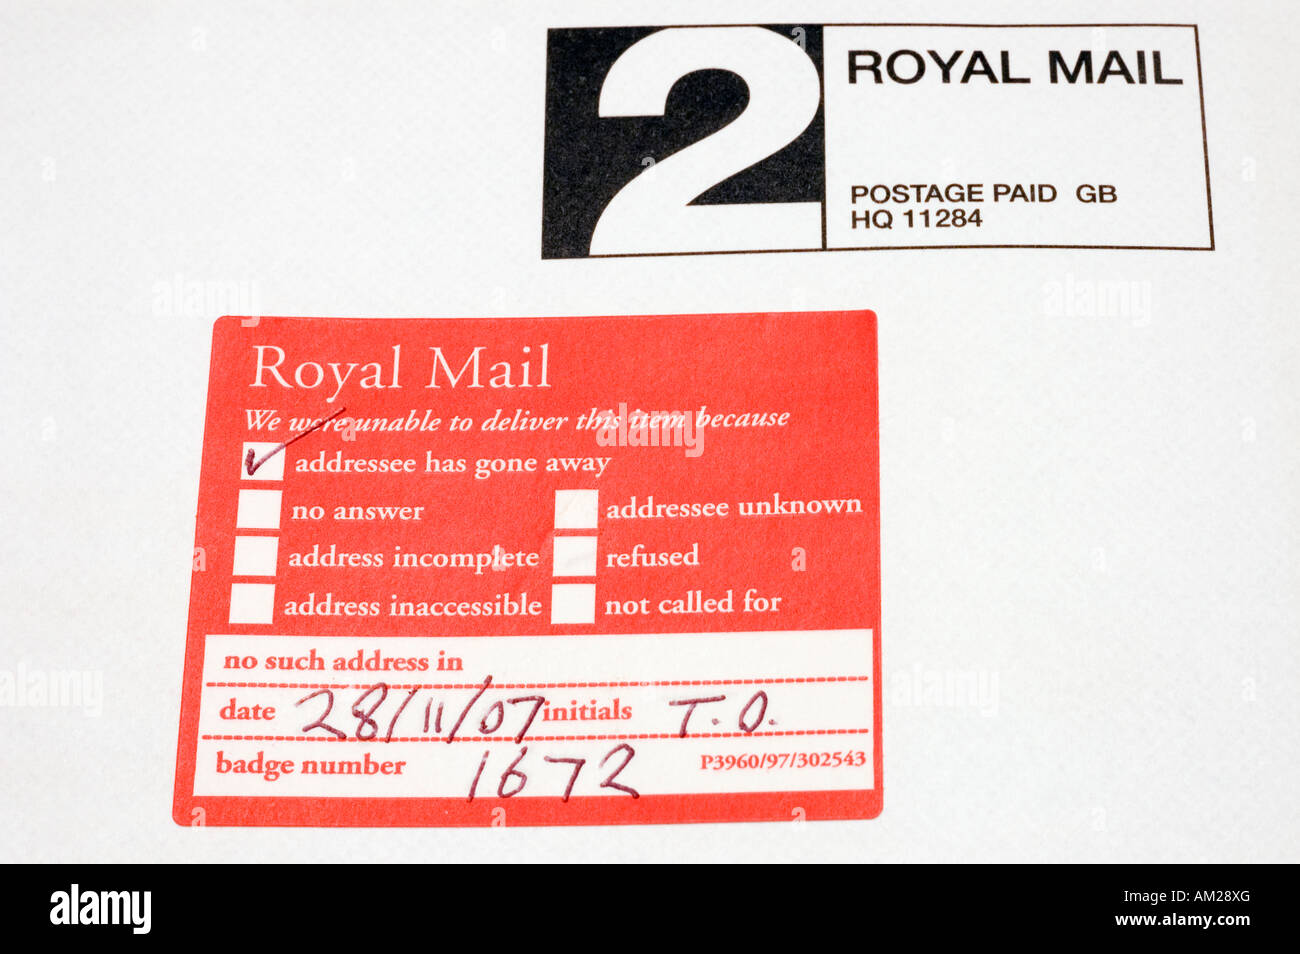 Royal Mail Sticker Used On Mail When Addressee Has Gone Away - Stock Image